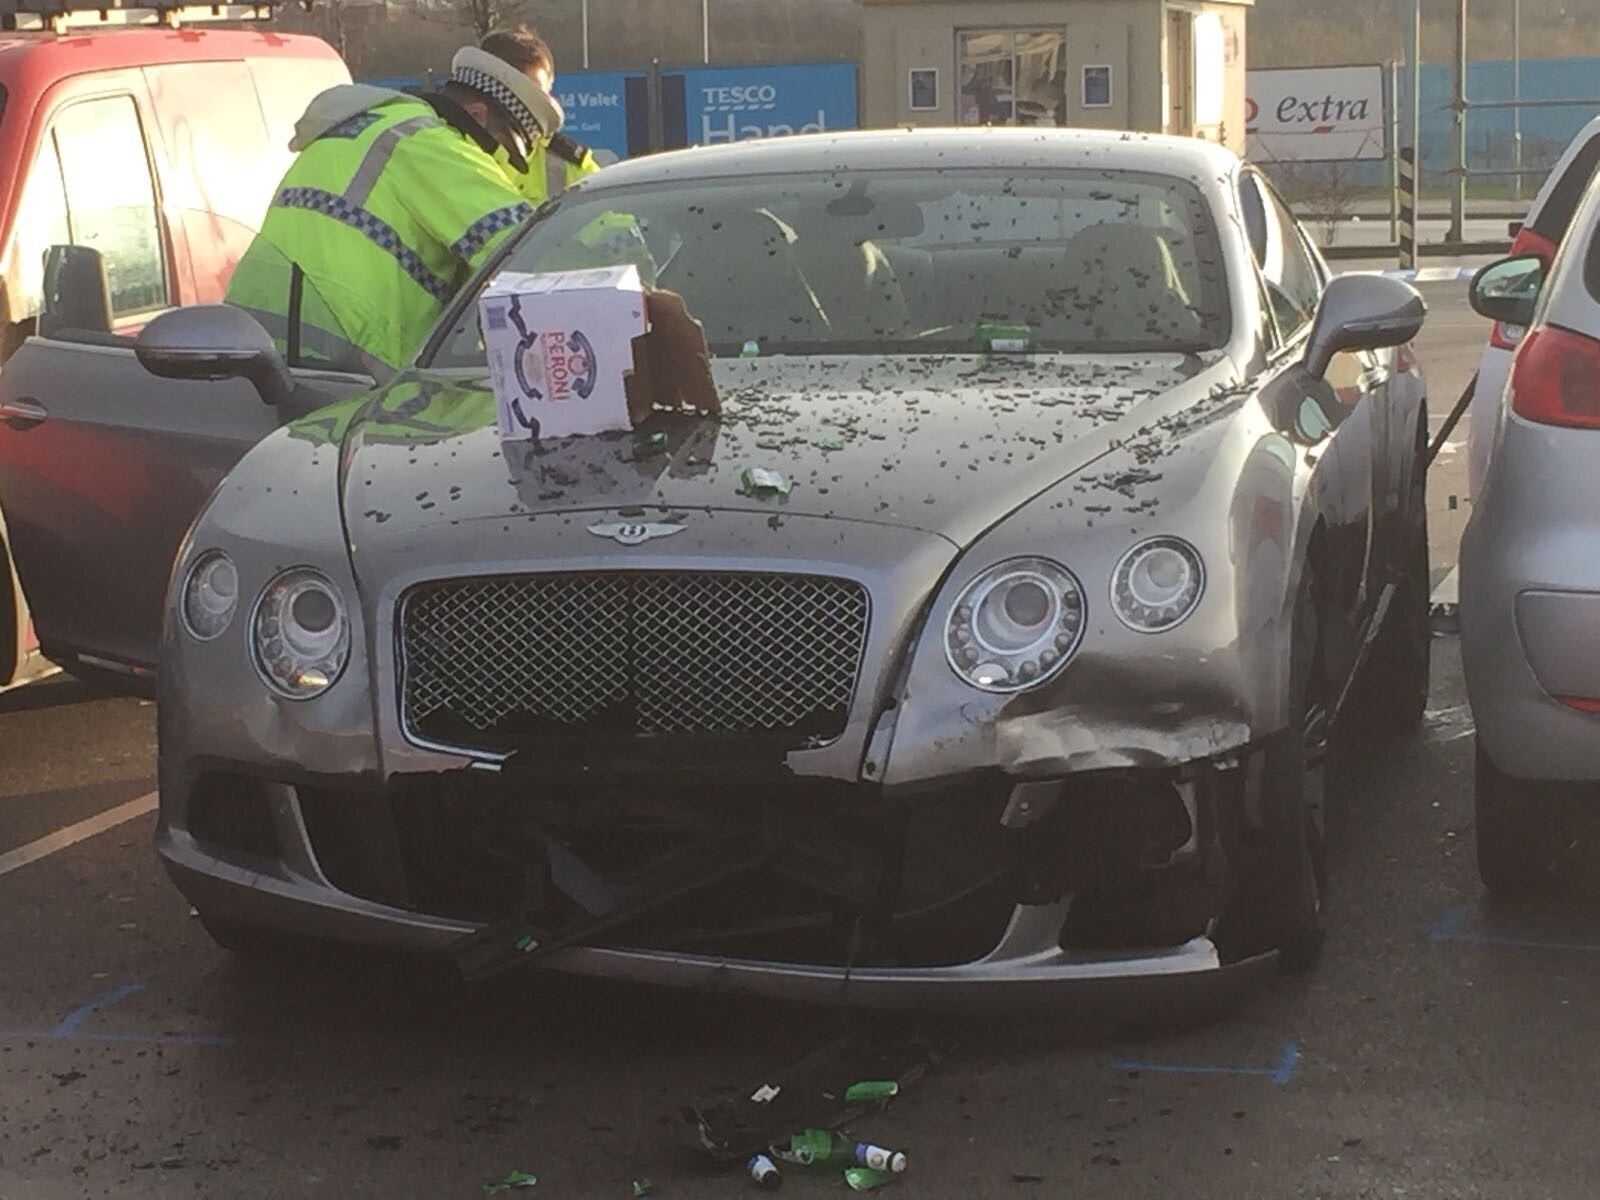 The Bentley after the incident